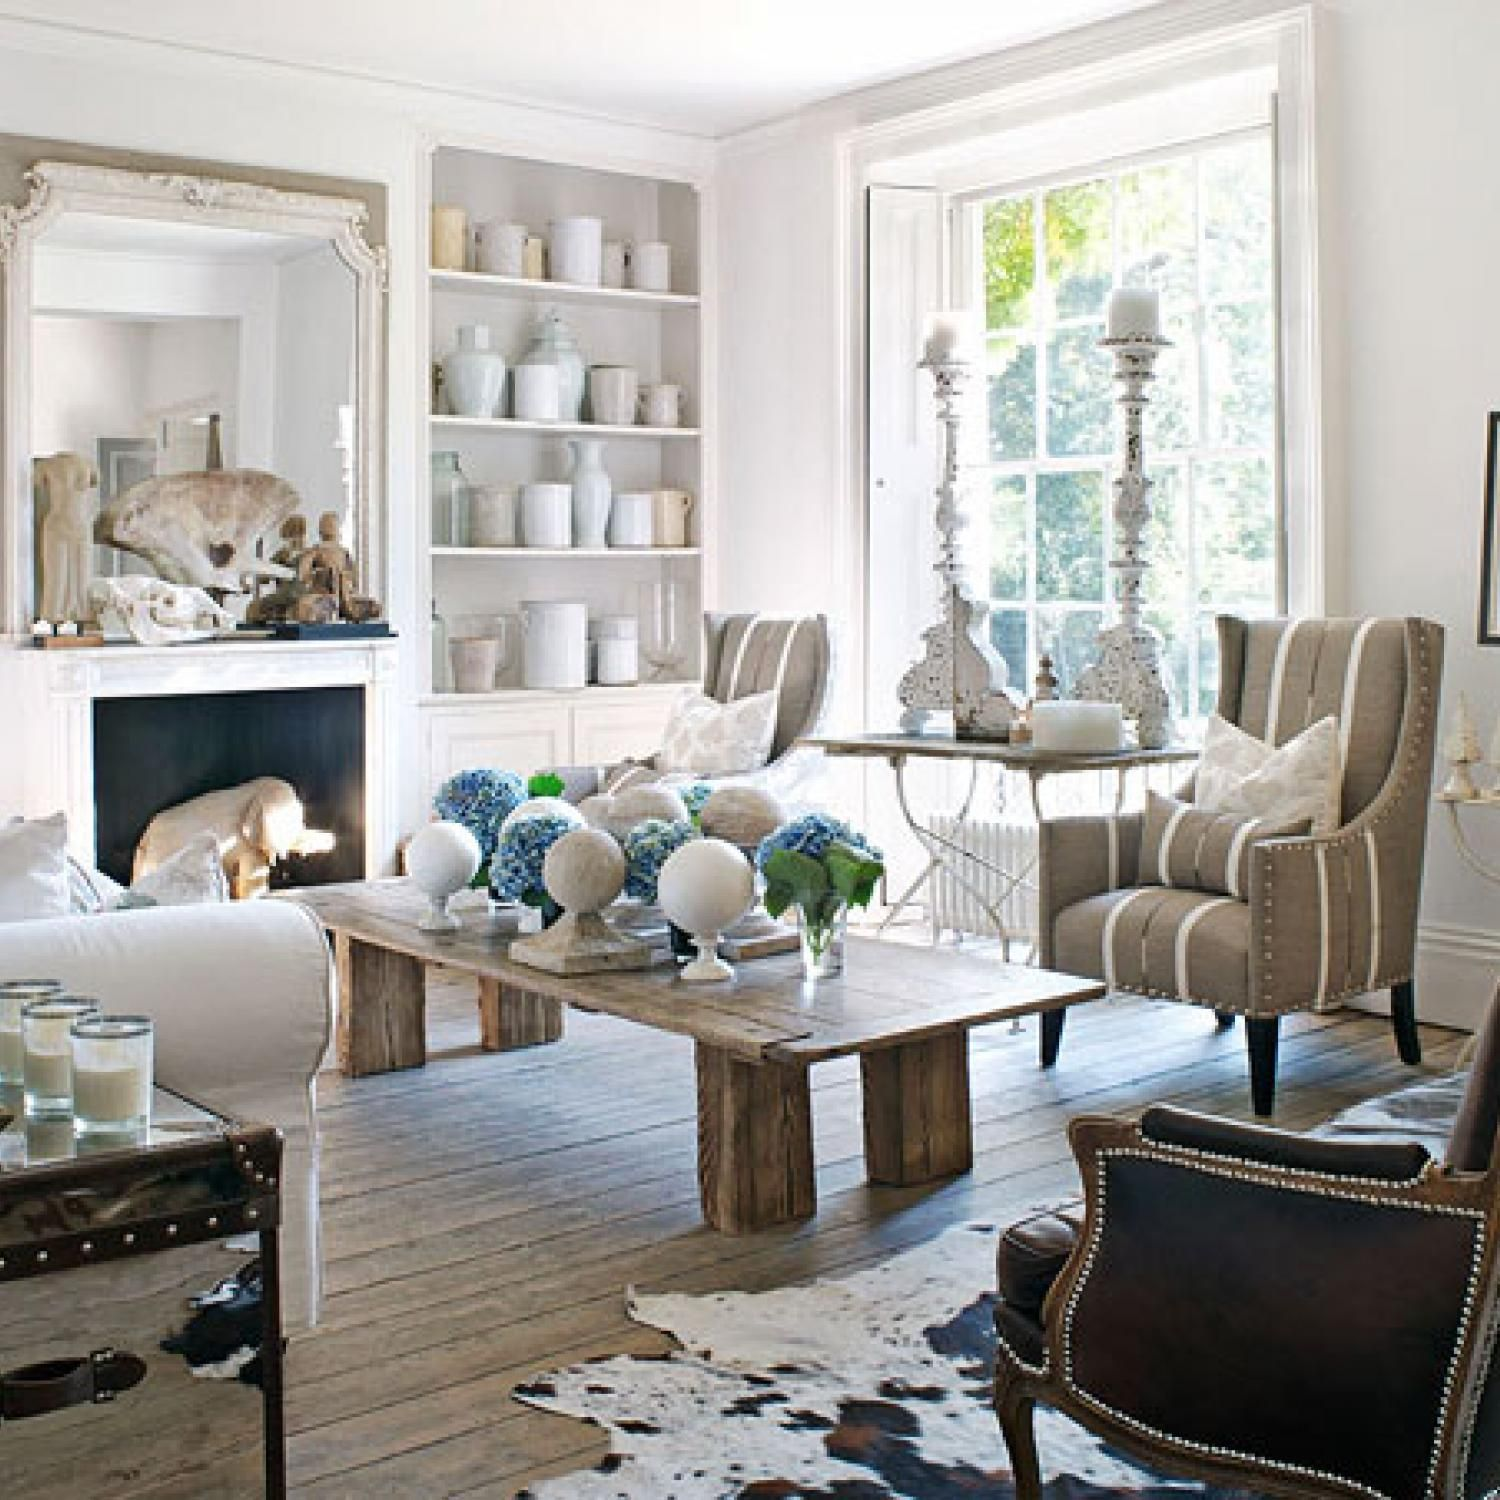 Family-Friendly English Country House | English country decor ...